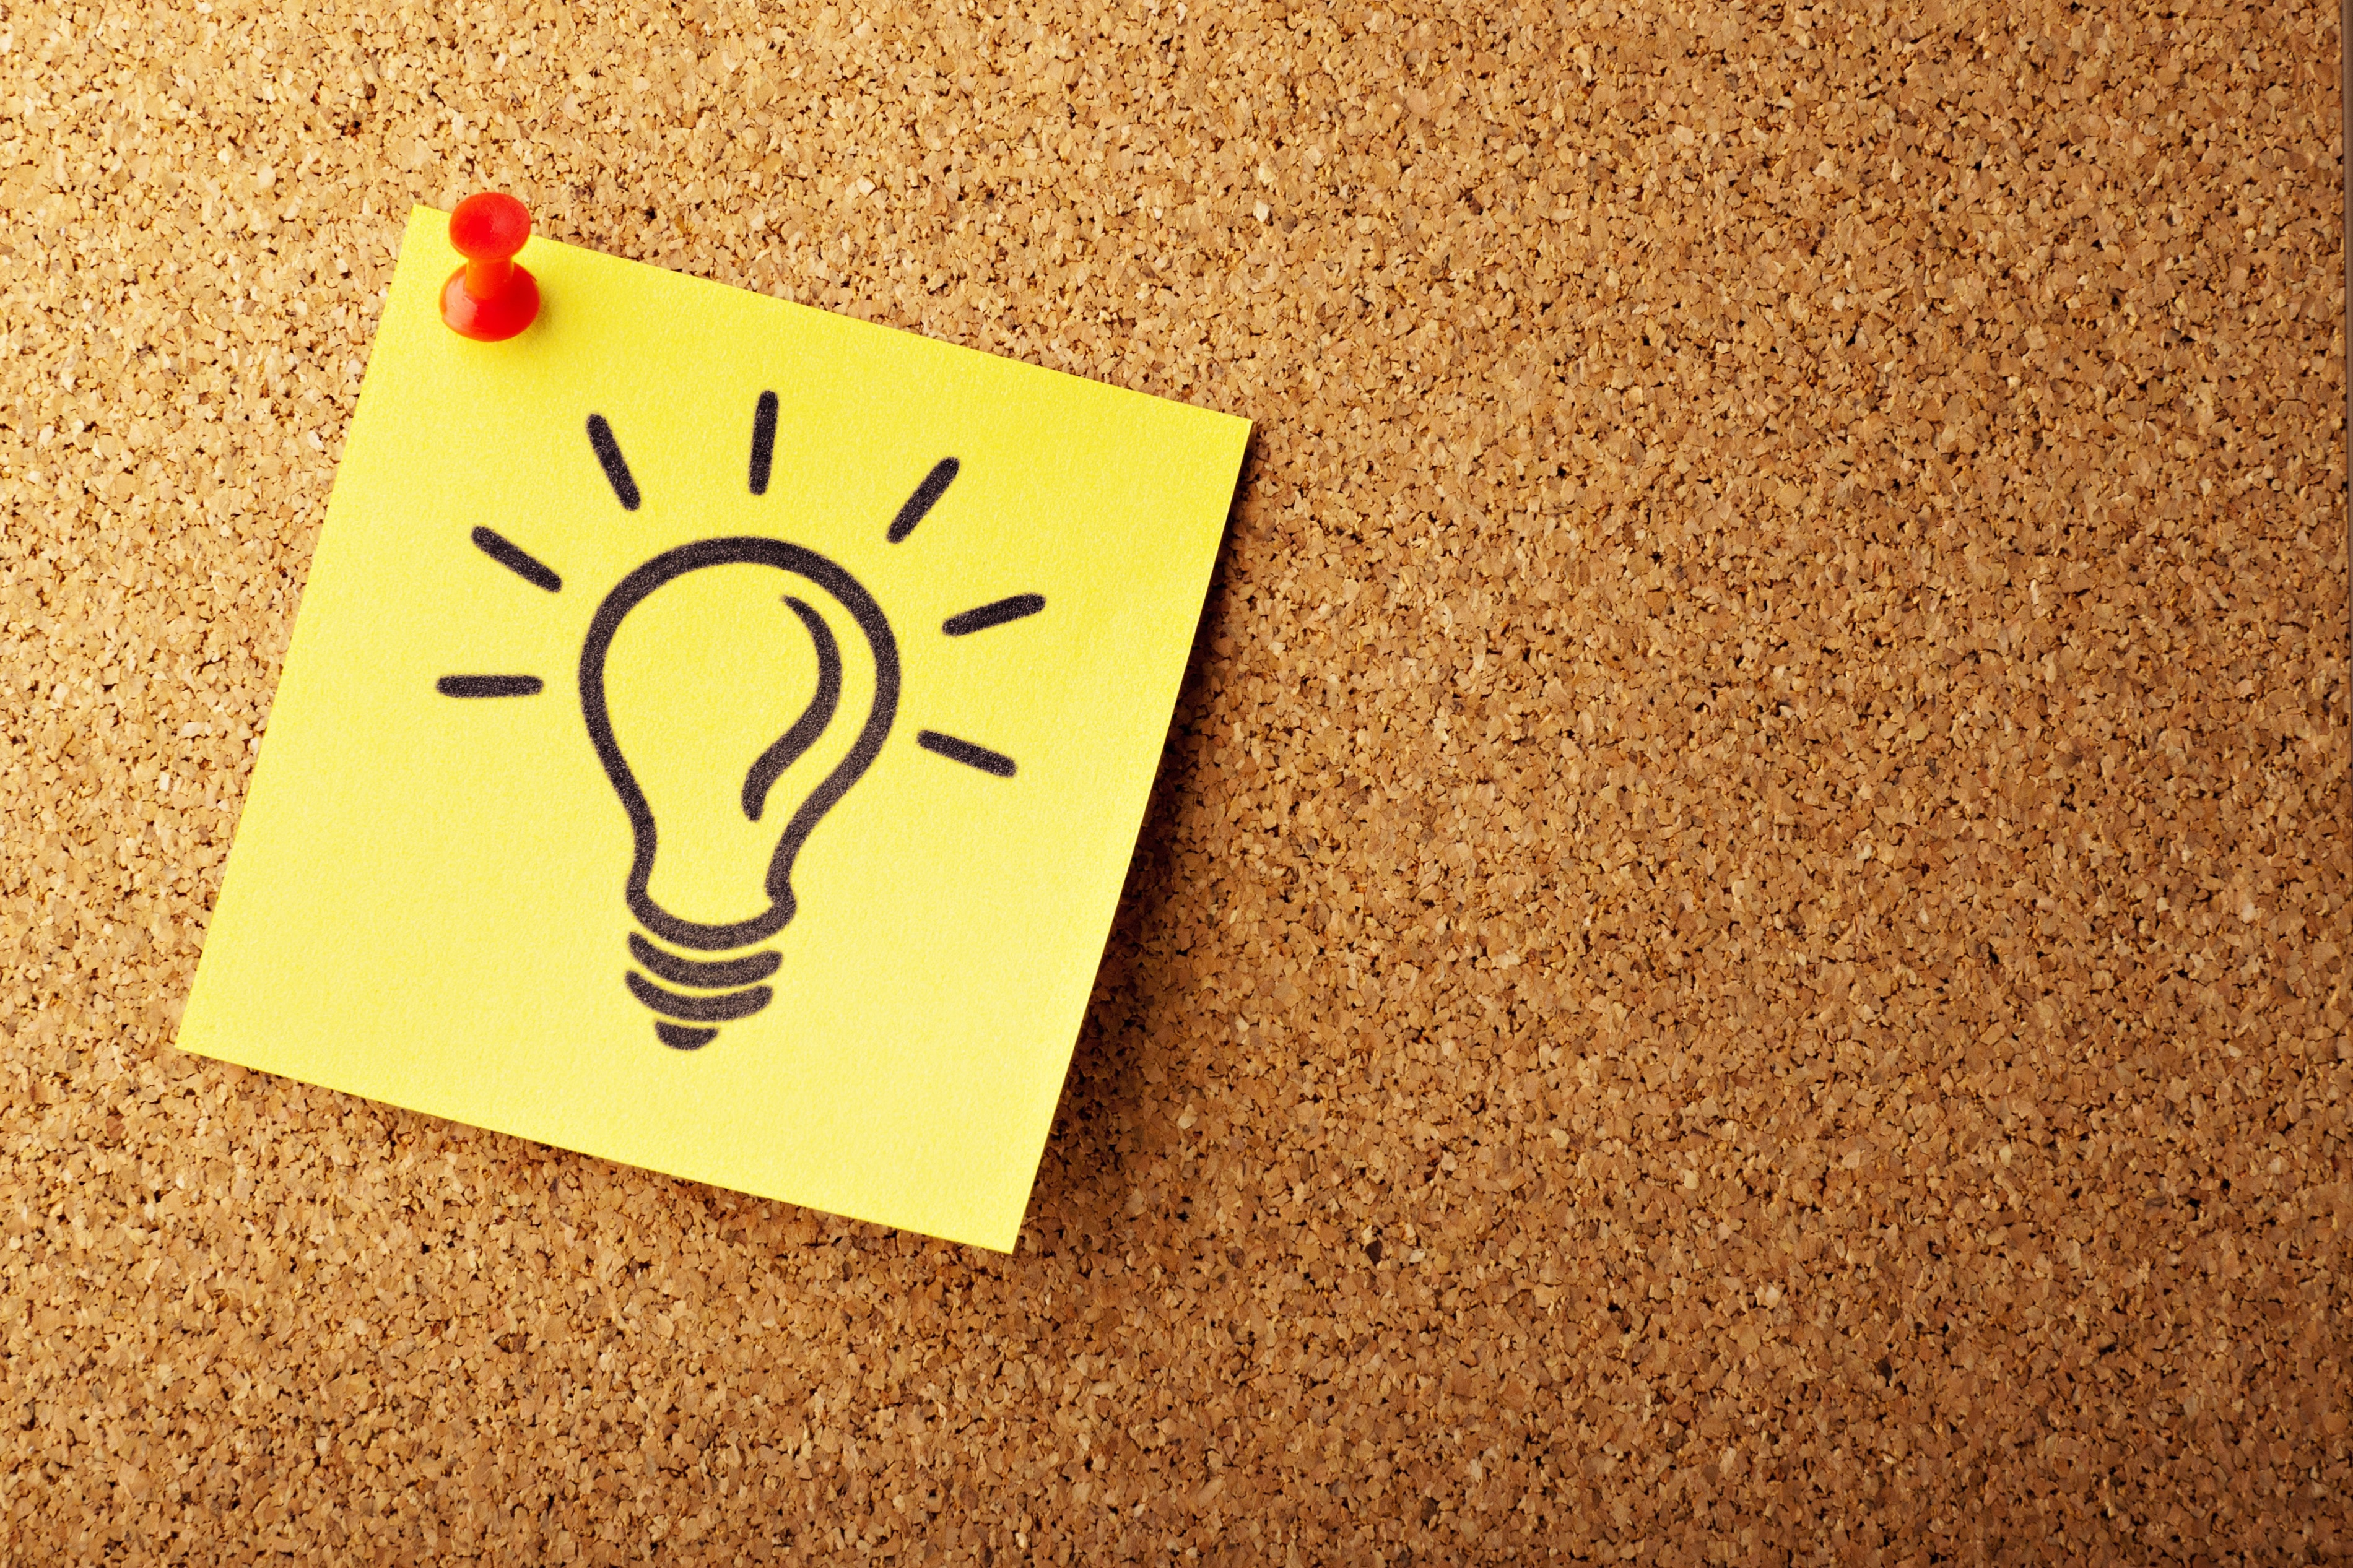 A cork pin board with a yellow postit note on which is drawn a light bulb